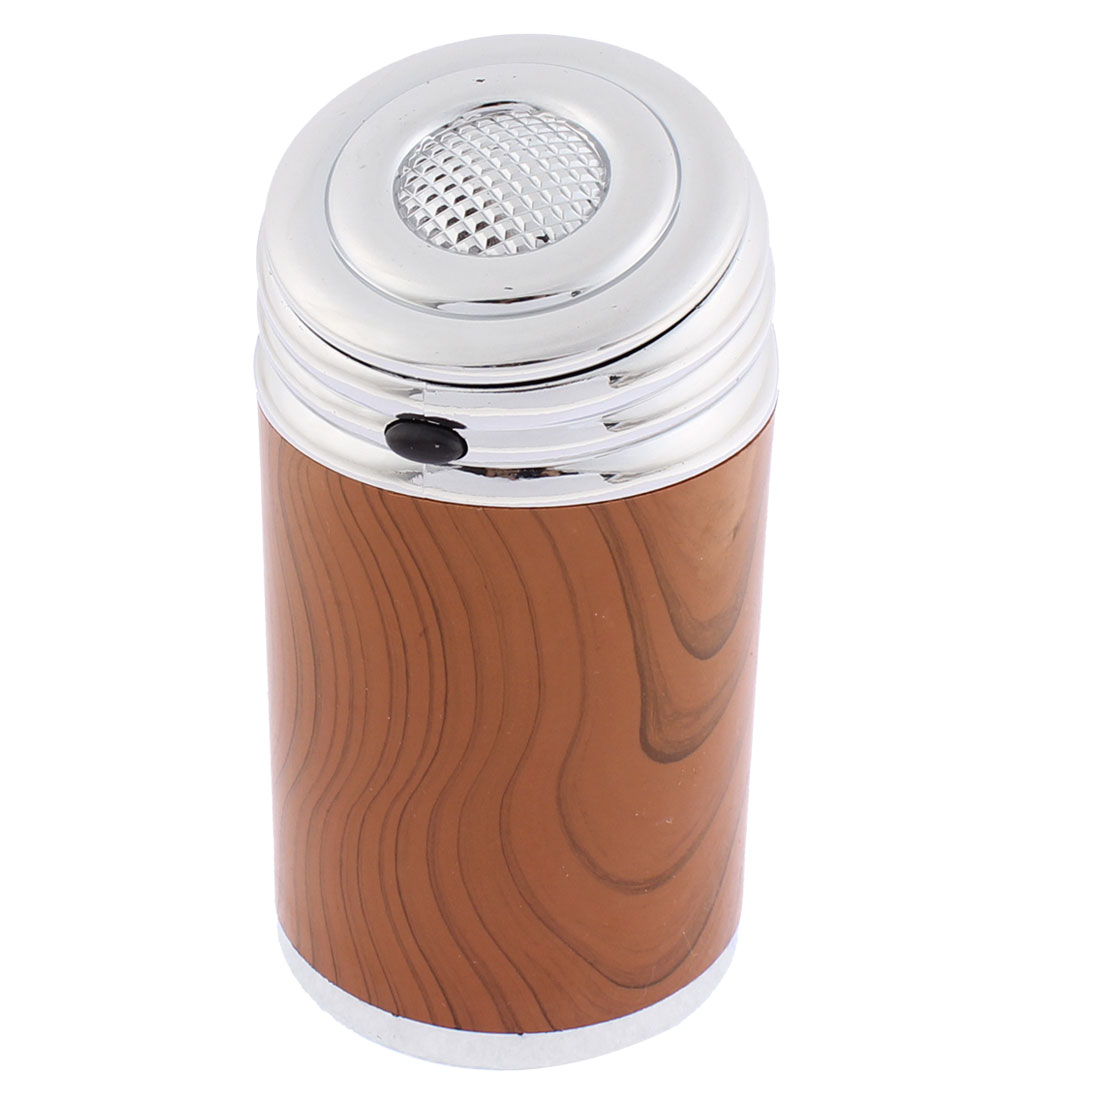 Silver Tone Wooden Color Automatic Button Design Cigarette Ash Holder Ashtray w Blue LED